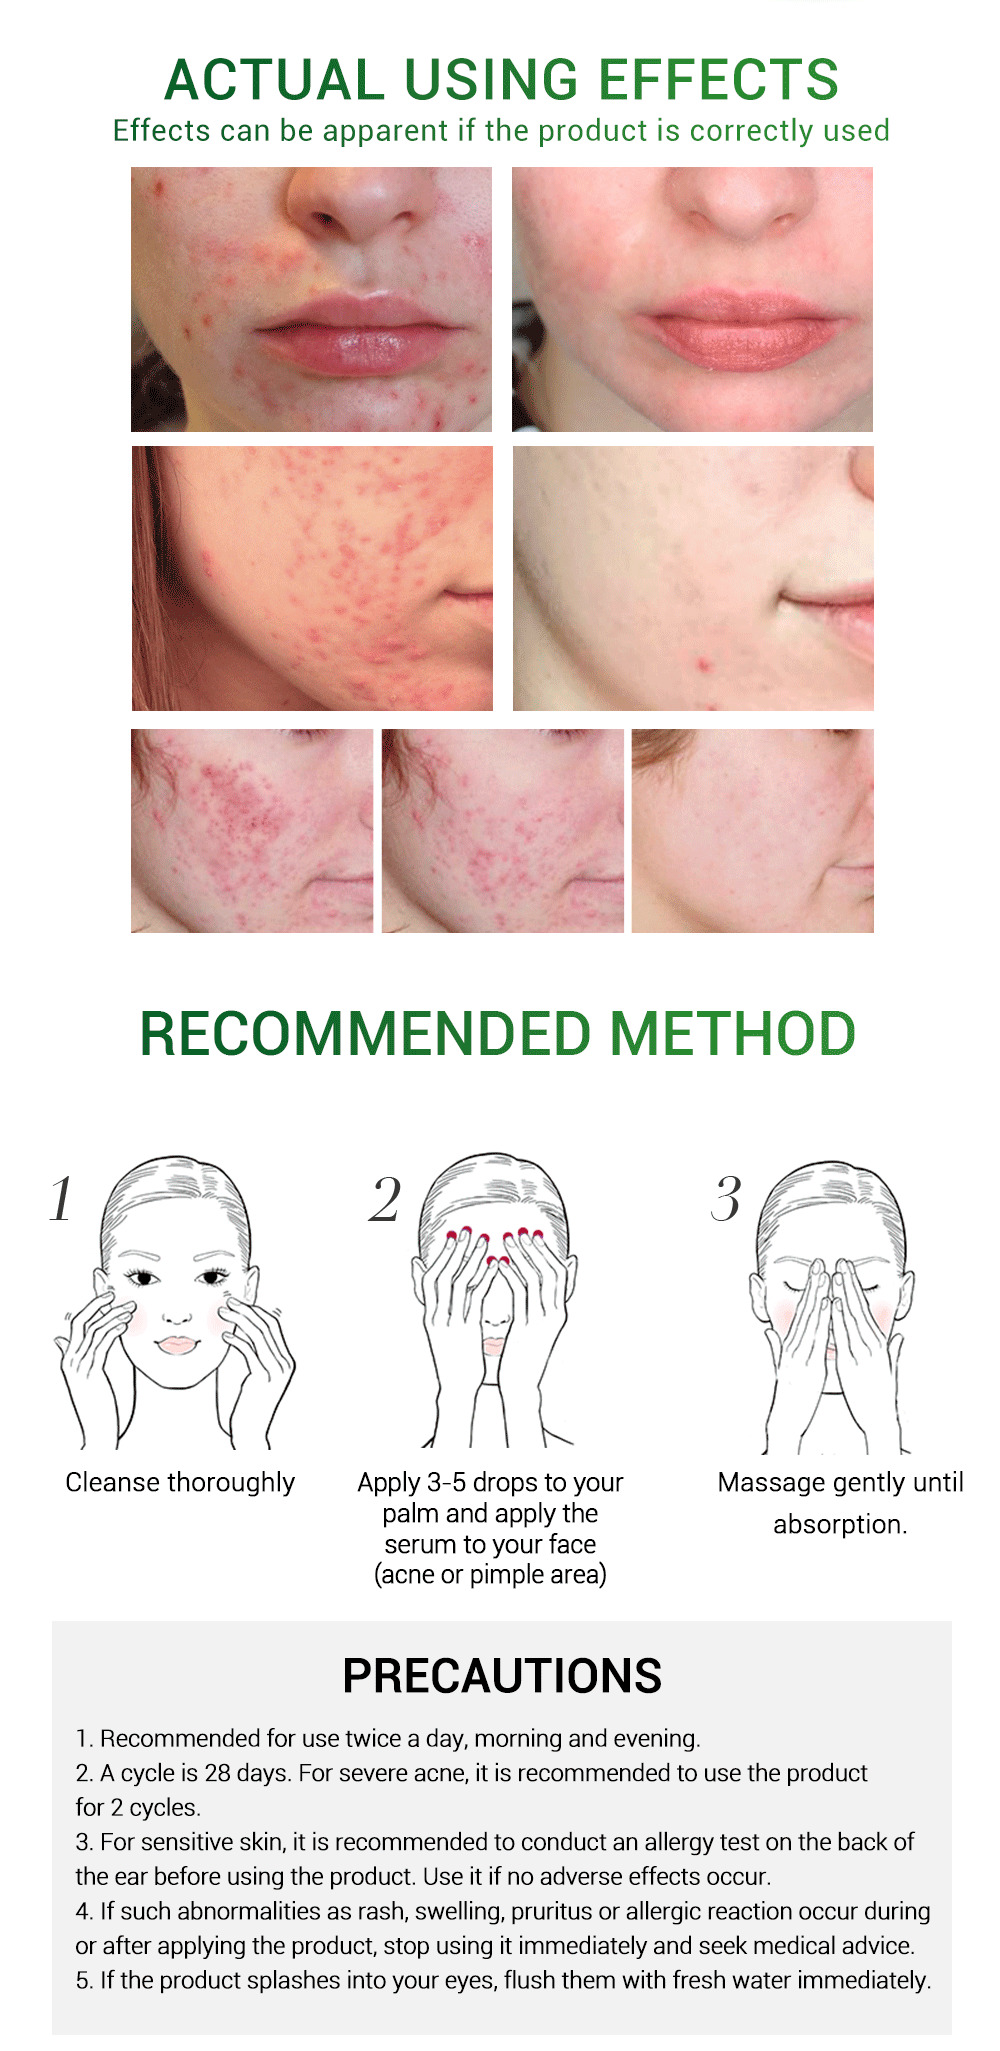 Skin Tag Patch | Acne Pimple Patch Face Mask Skin Care Acne Treatment Serum Face Cream Acne Cream Essence Sheet Mask Facial Care Tools www.prettybuyers natural acne treatment how to remove skin tag remover body skin tag removal patch claritag mushroom cookies skin tag removal best skin tag removal tool serum